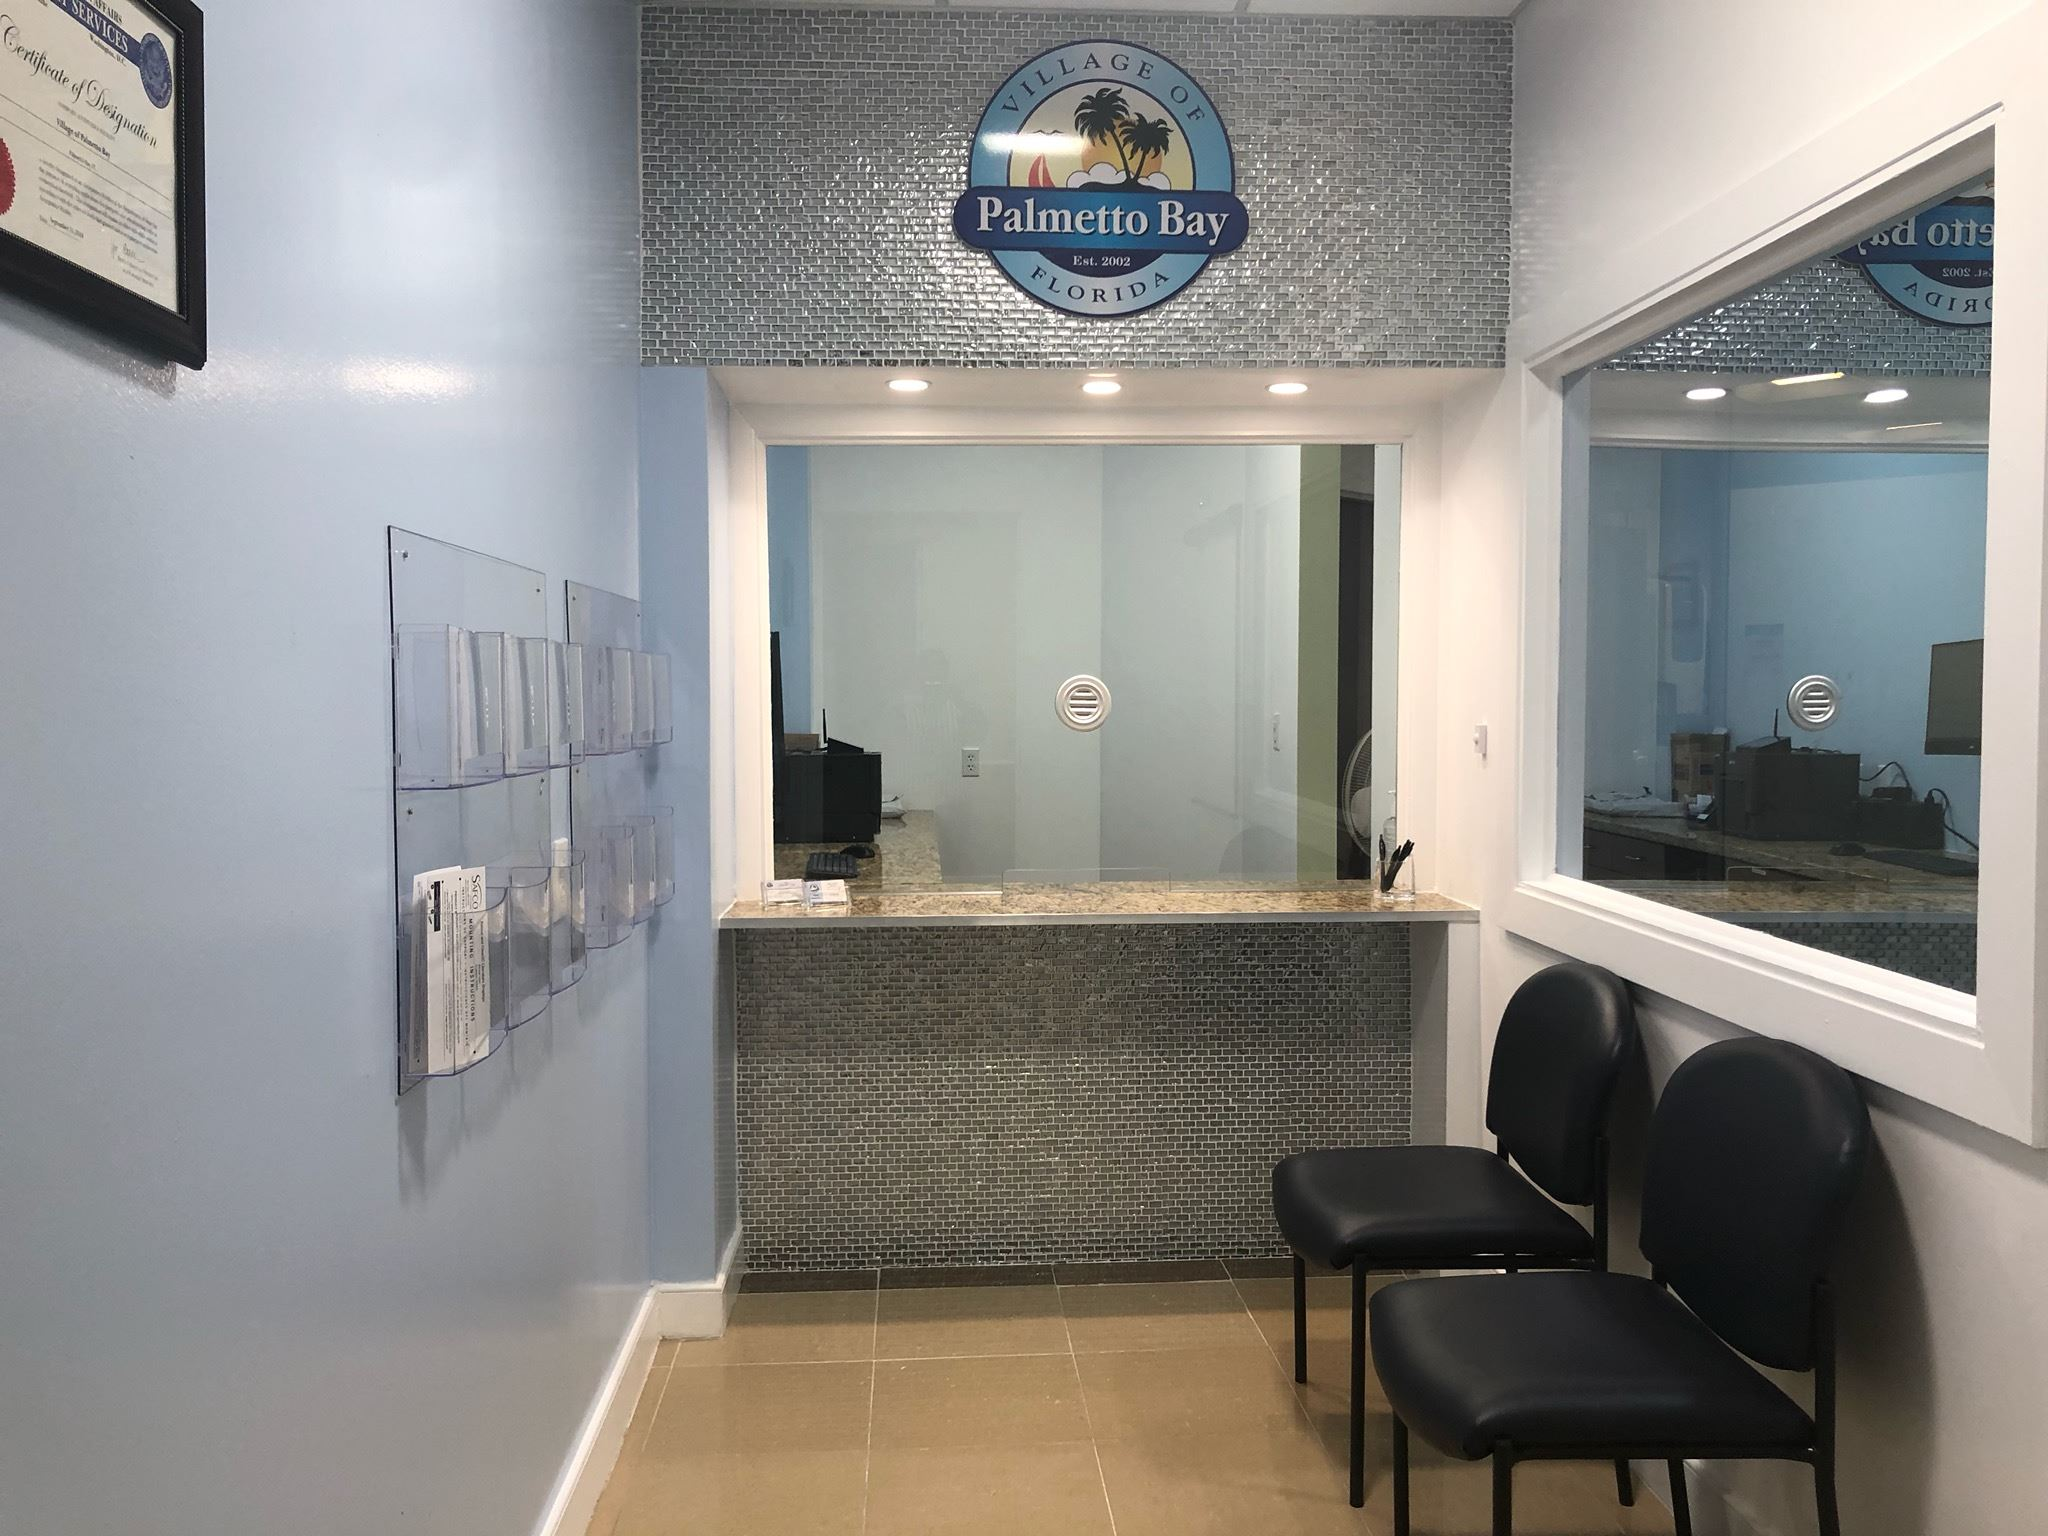 Passport Office at Village of Palmetto Bay